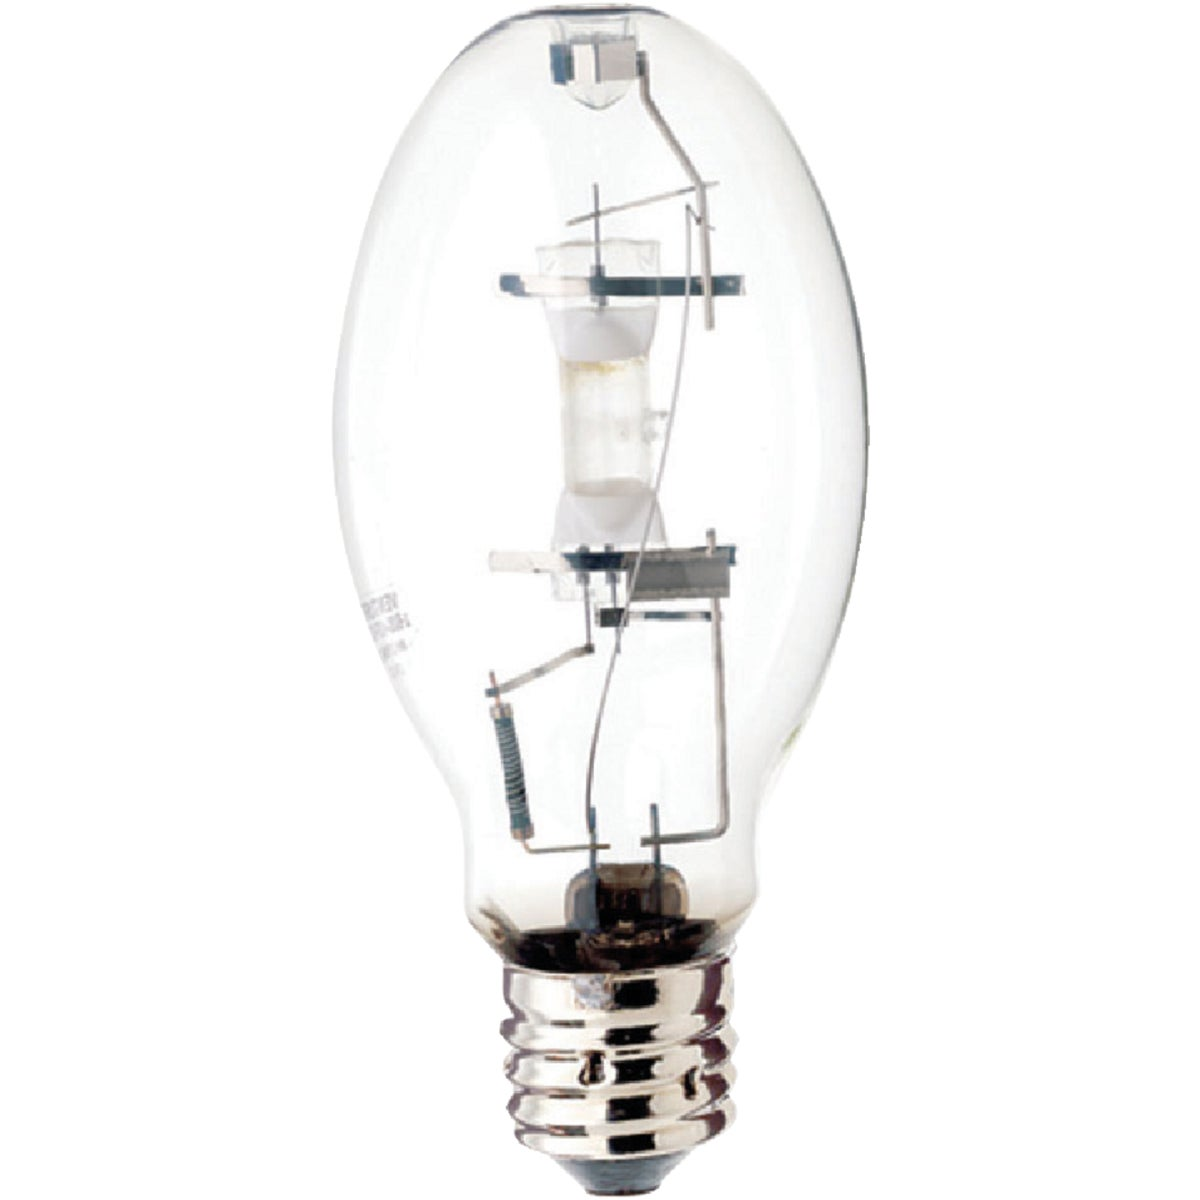 175W MOG BASE MERC BULB - 26440 by G E Lighting Incom